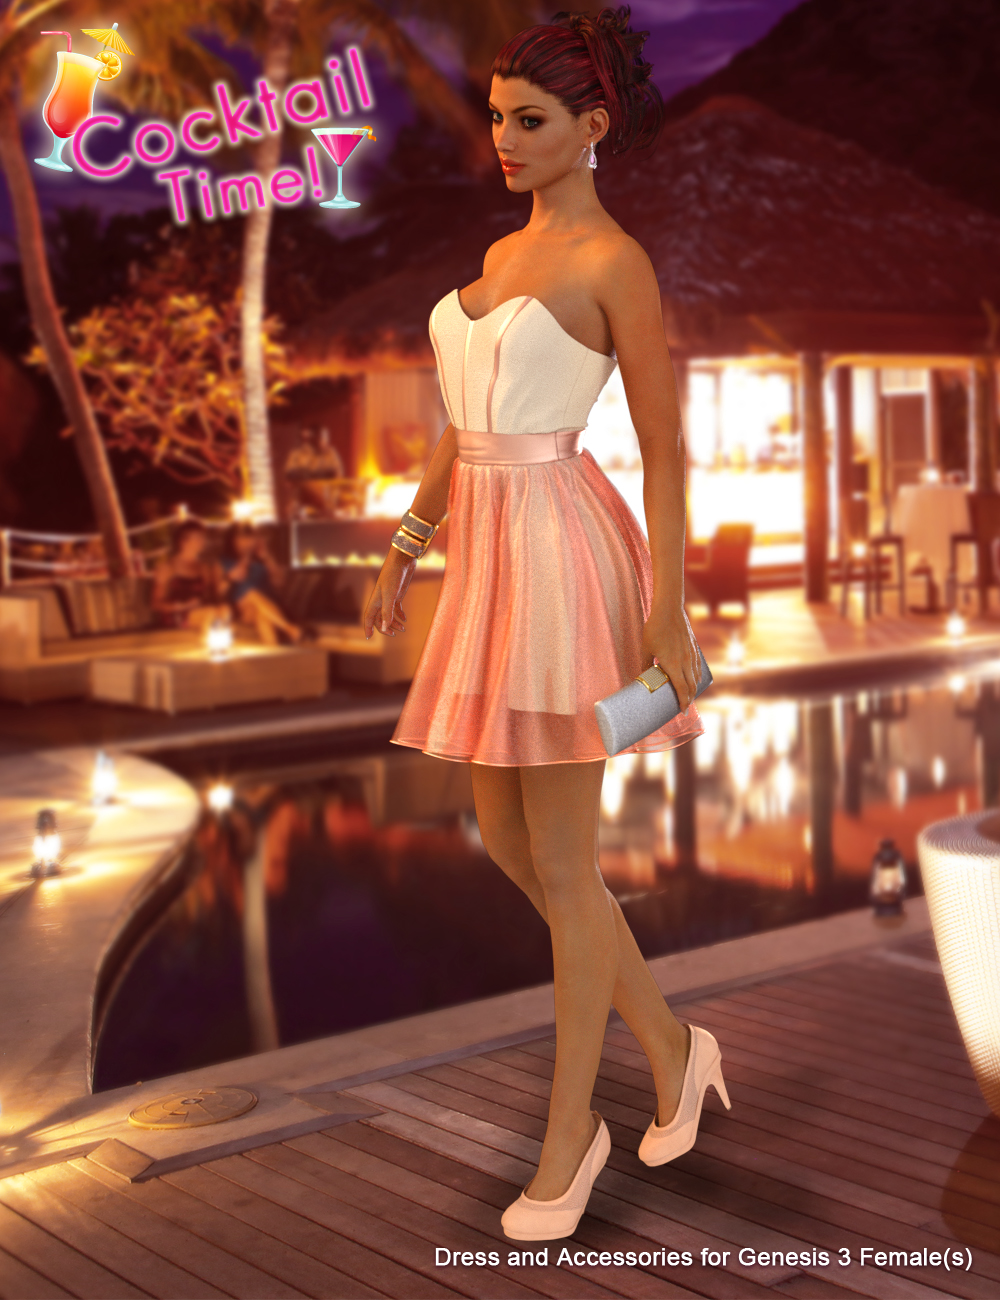 Cocktail Time for Genesis 3 Female(s) by: Blue Rabbit, 3D Models by Daz 3D